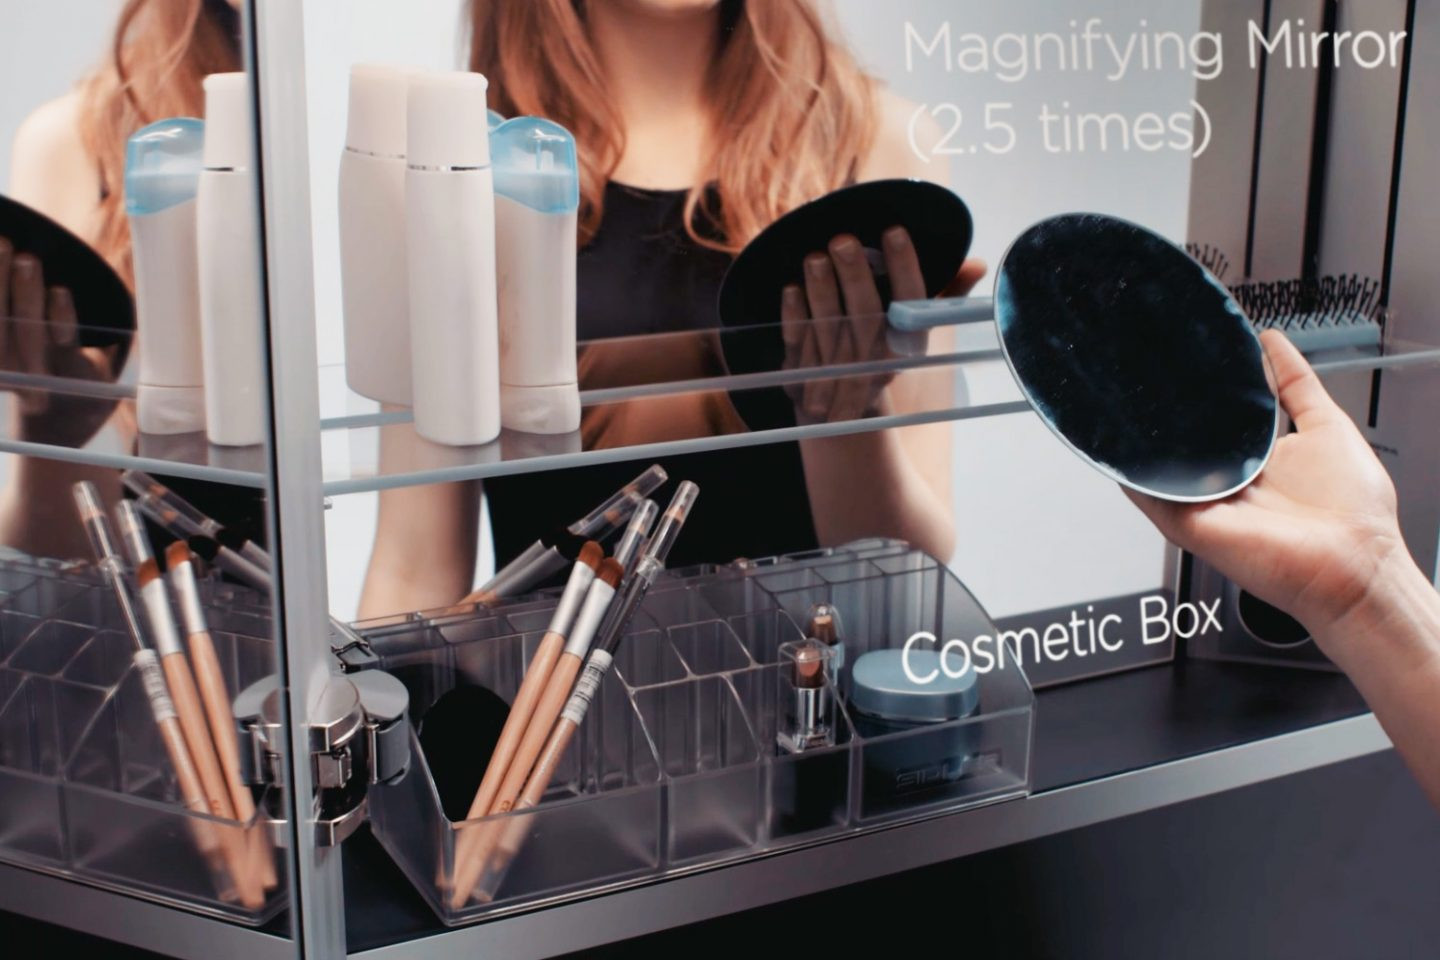 LED - Cosmetic Box and Magnifying Mirror